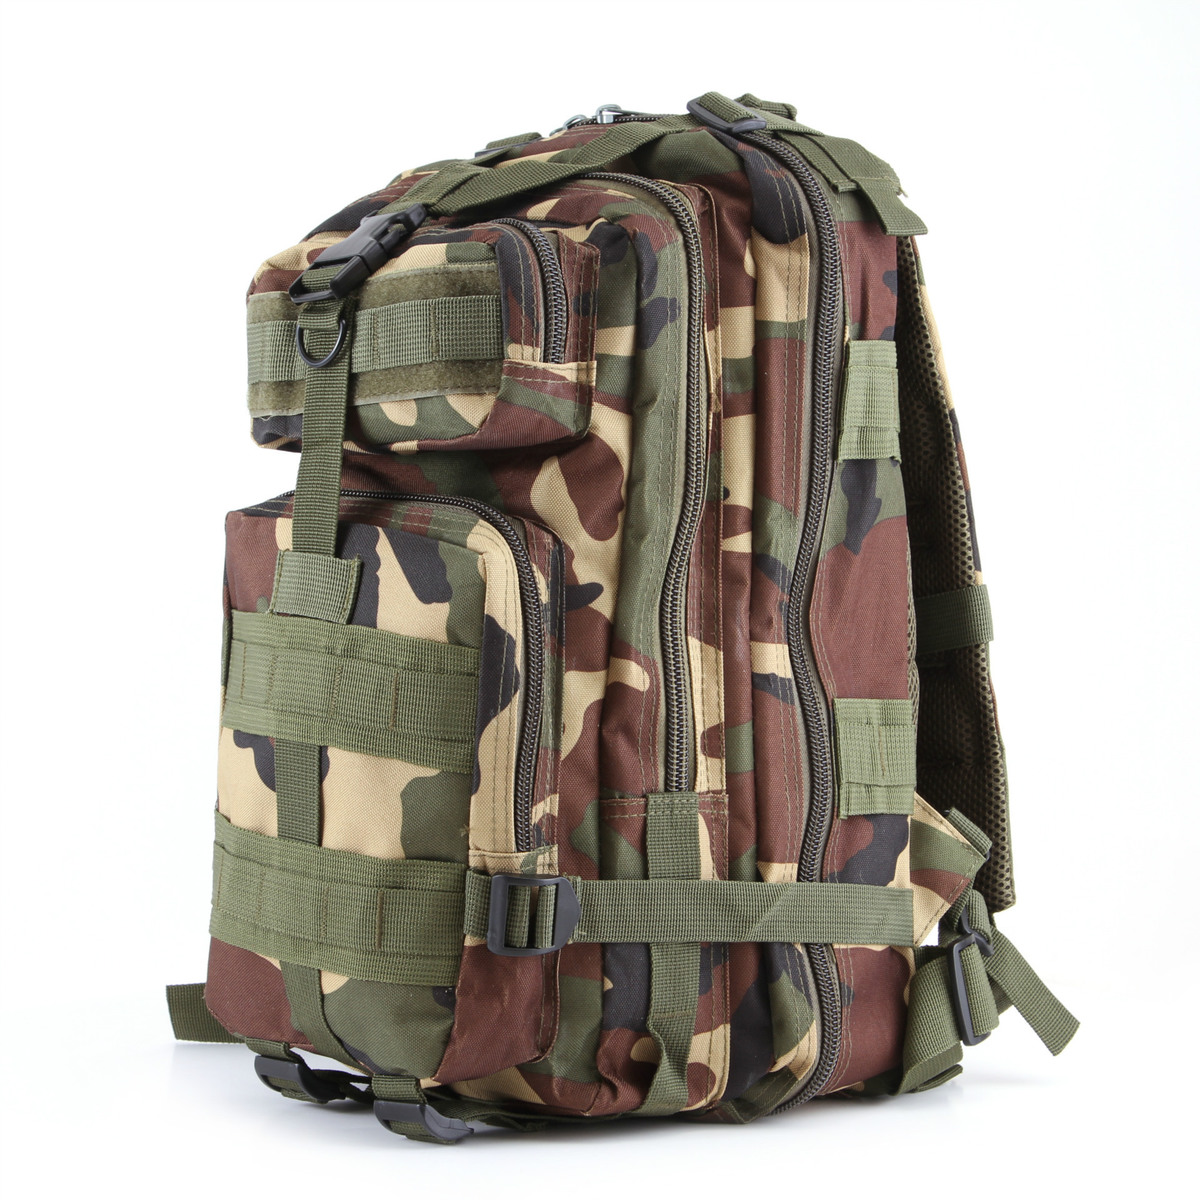 2018 Unisex Outdoor Military Army Tactical Backpack Travelling Trekking Camping Hiking Camouflage Sports Rucksack outlife new style professional military tactical multifunction shovel outdoor camping survival folding spade tool equipment